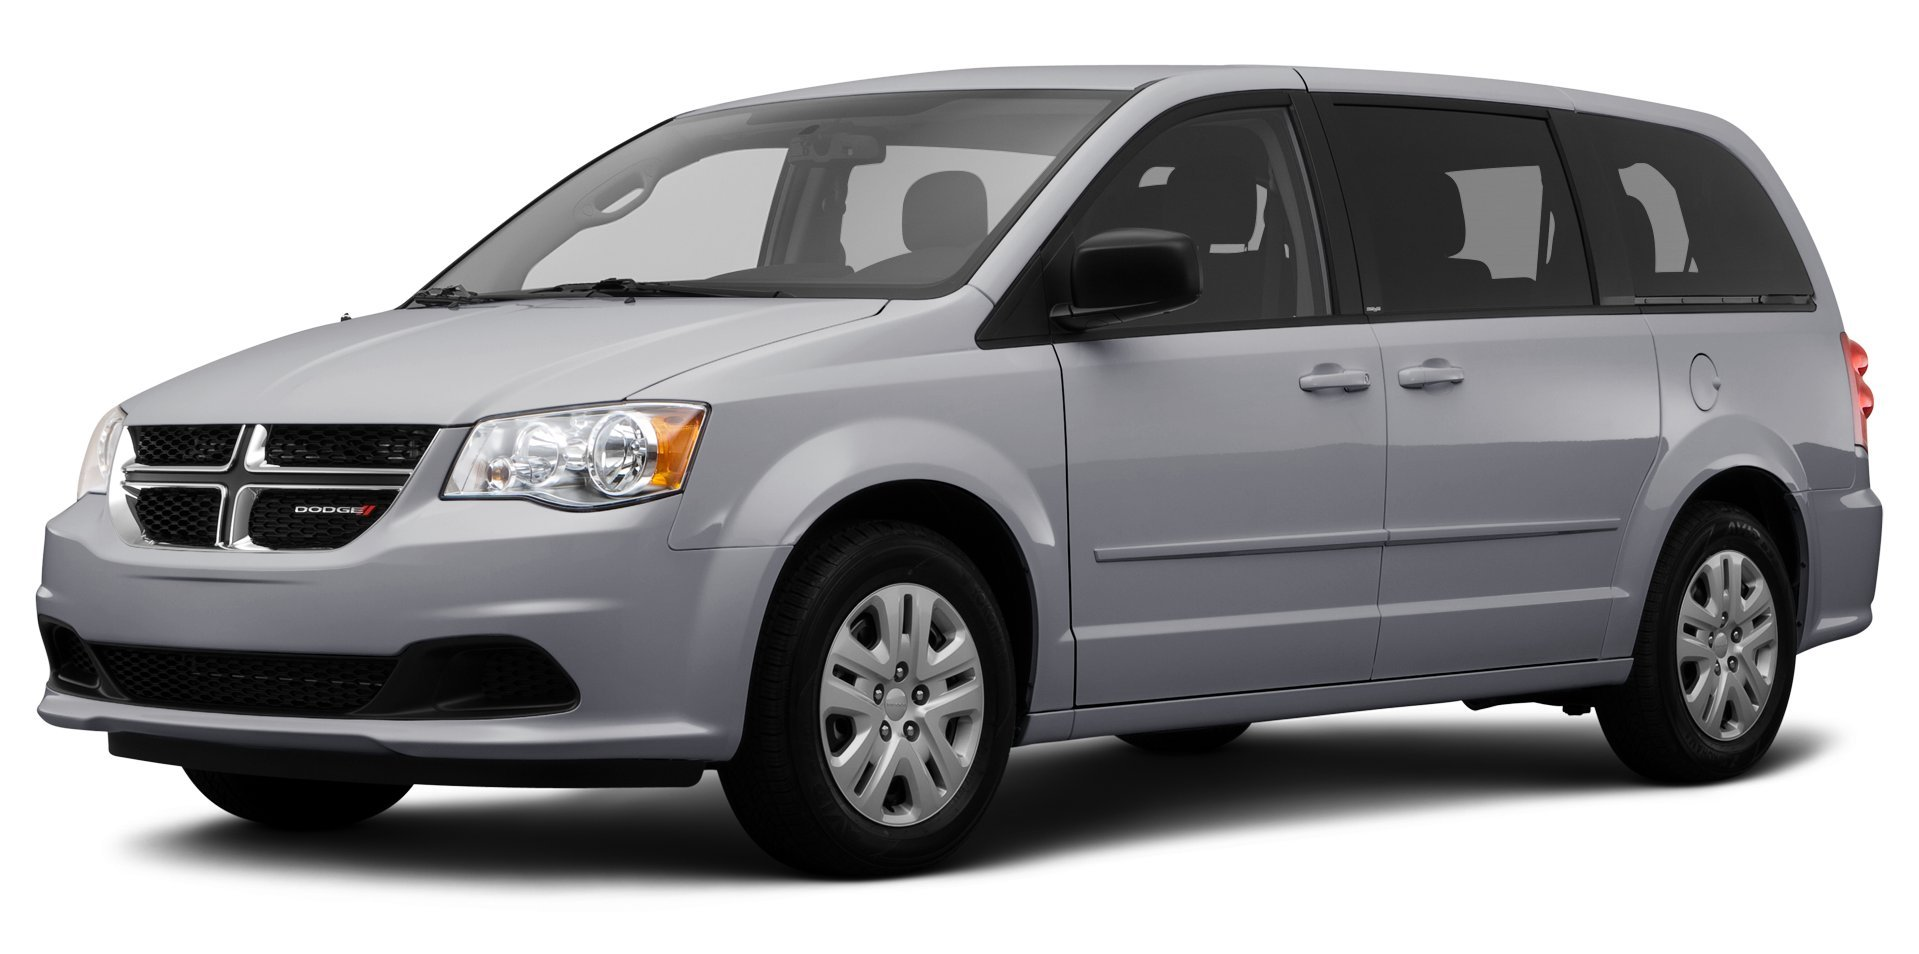 2014 dodge grand caravan reviews images and specs vehicles. Black Bedroom Furniture Sets. Home Design Ideas